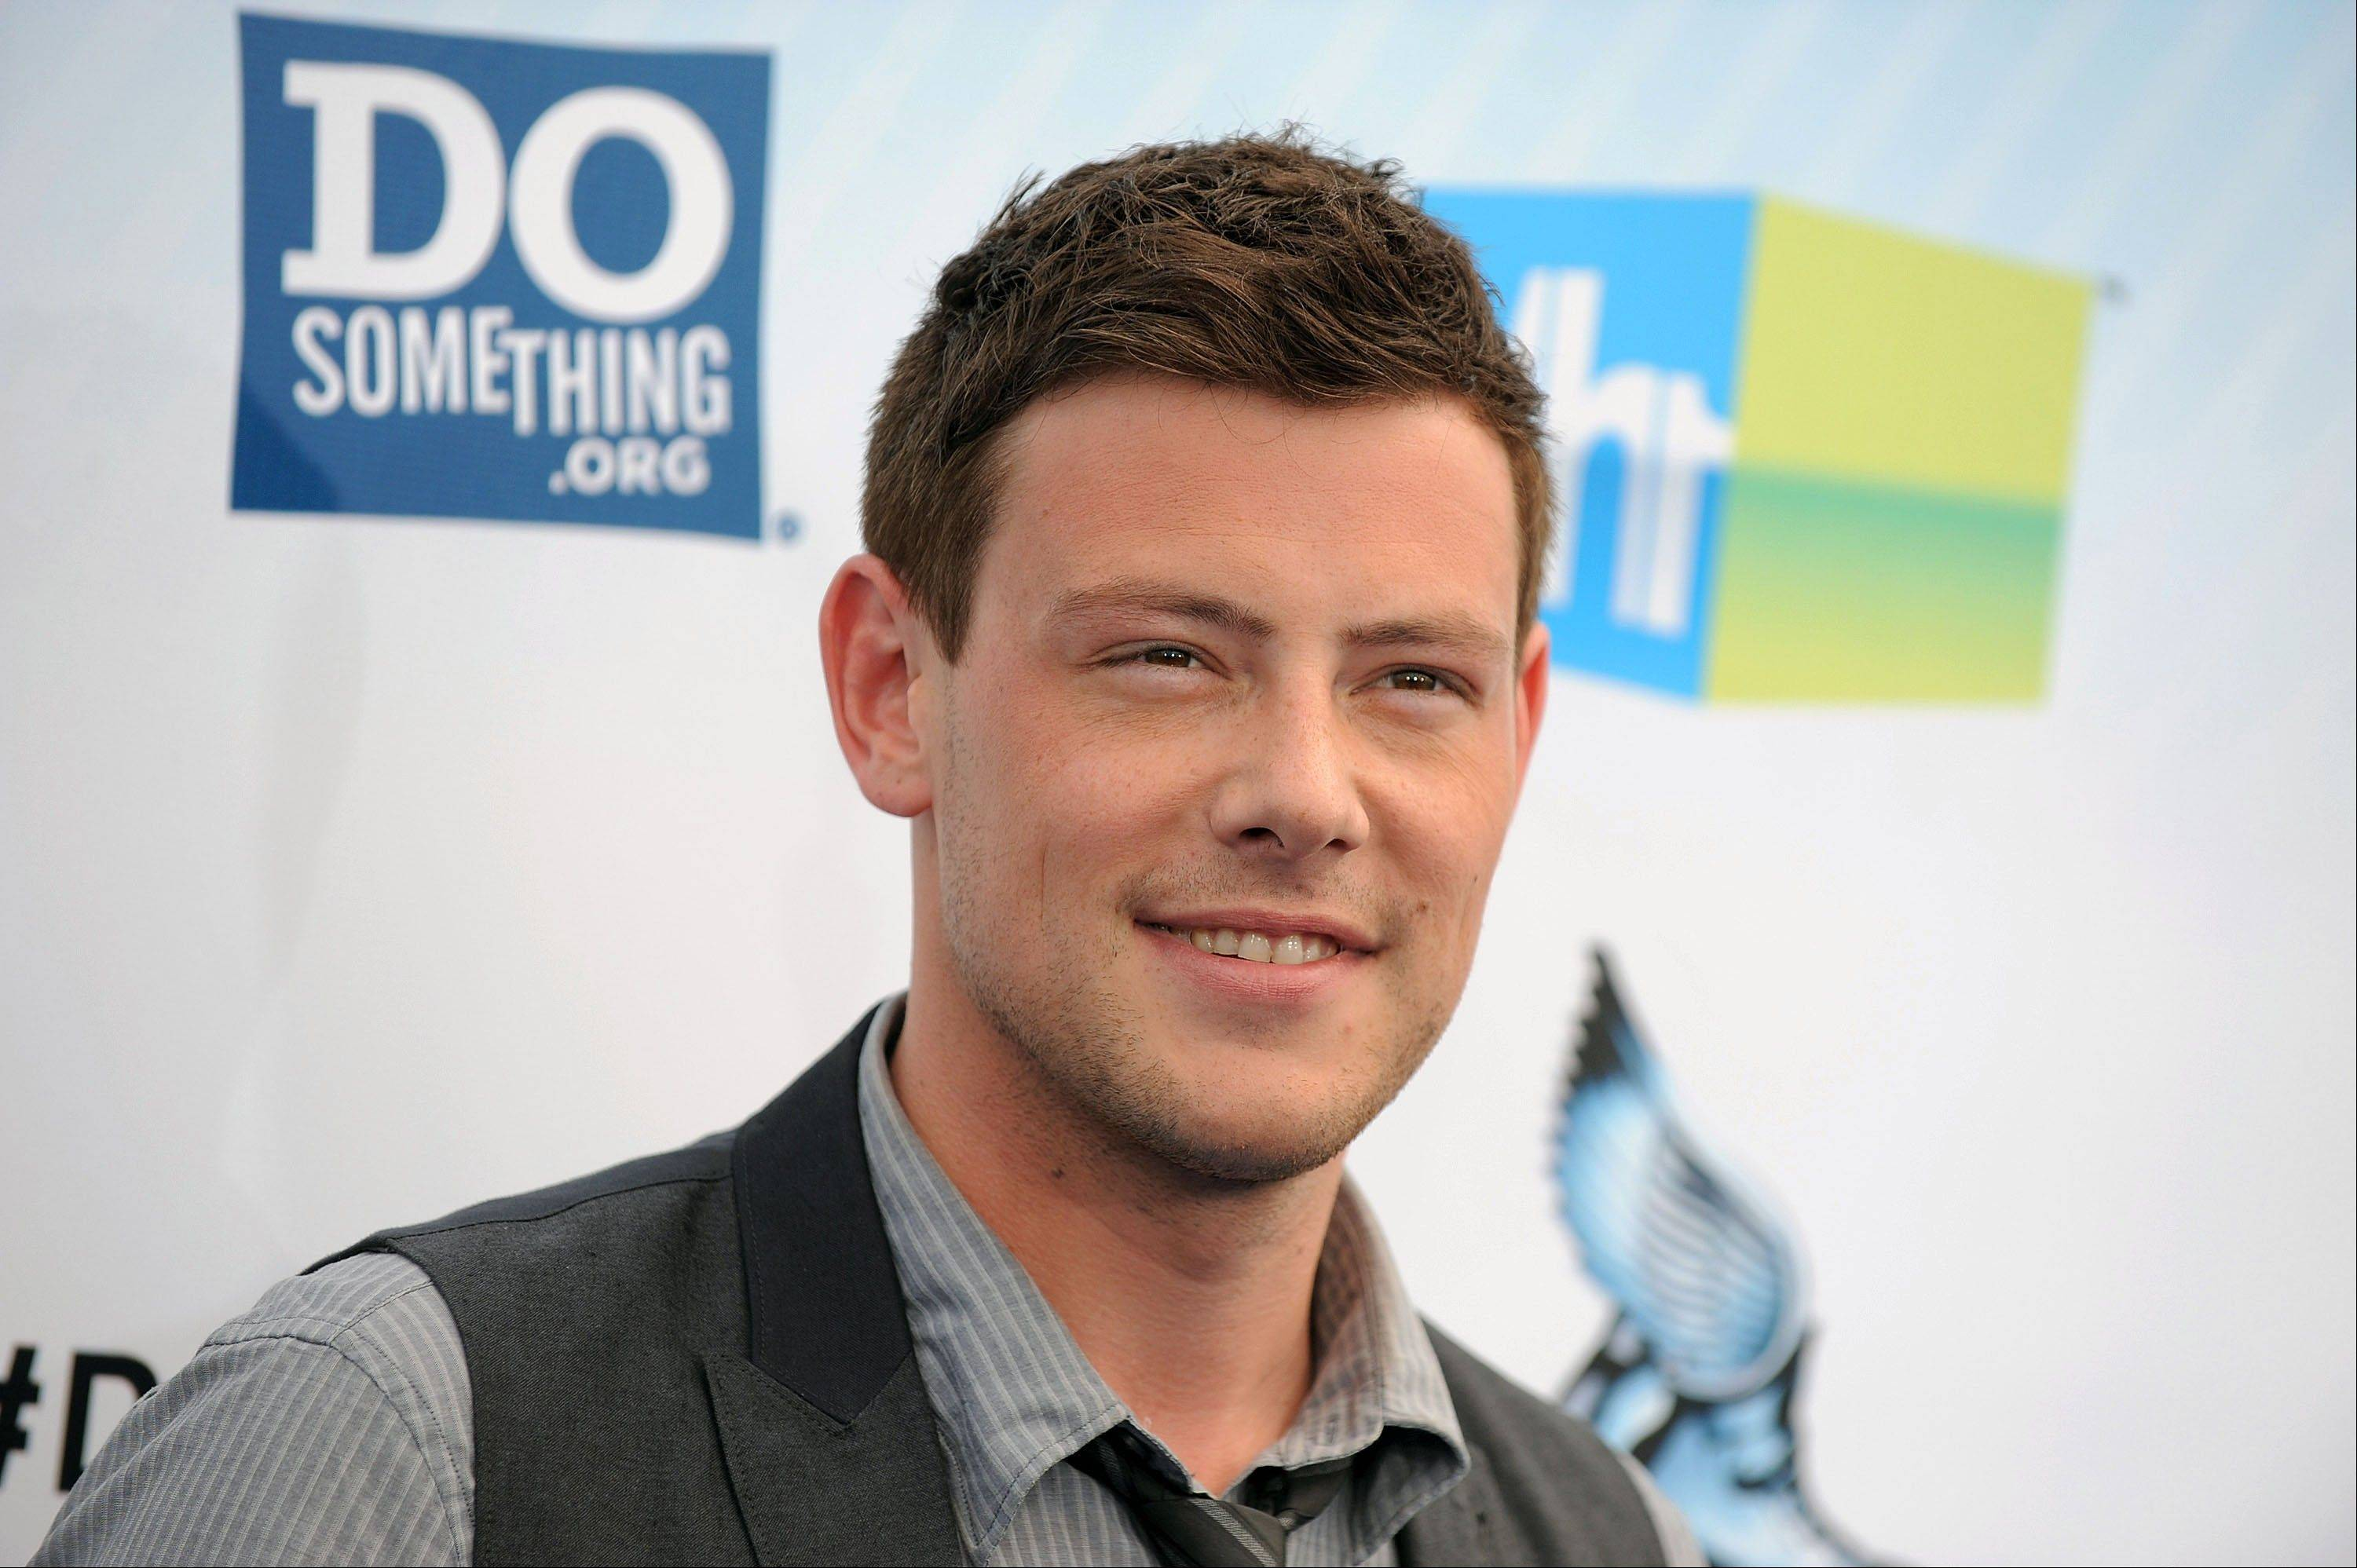 "This Aug. 19, 2012 file photo shows actor Cory Monteith at the 2012 Do Something awards in Santa Monica, Calif. Monteith, who shot to fame in the hit TV series ""Glee"" but was beset by addiction struggles so fierce that he once said he was lucky to be alive, died July 13, 2013 after an overdose of heroin and alcohol. He was 31."